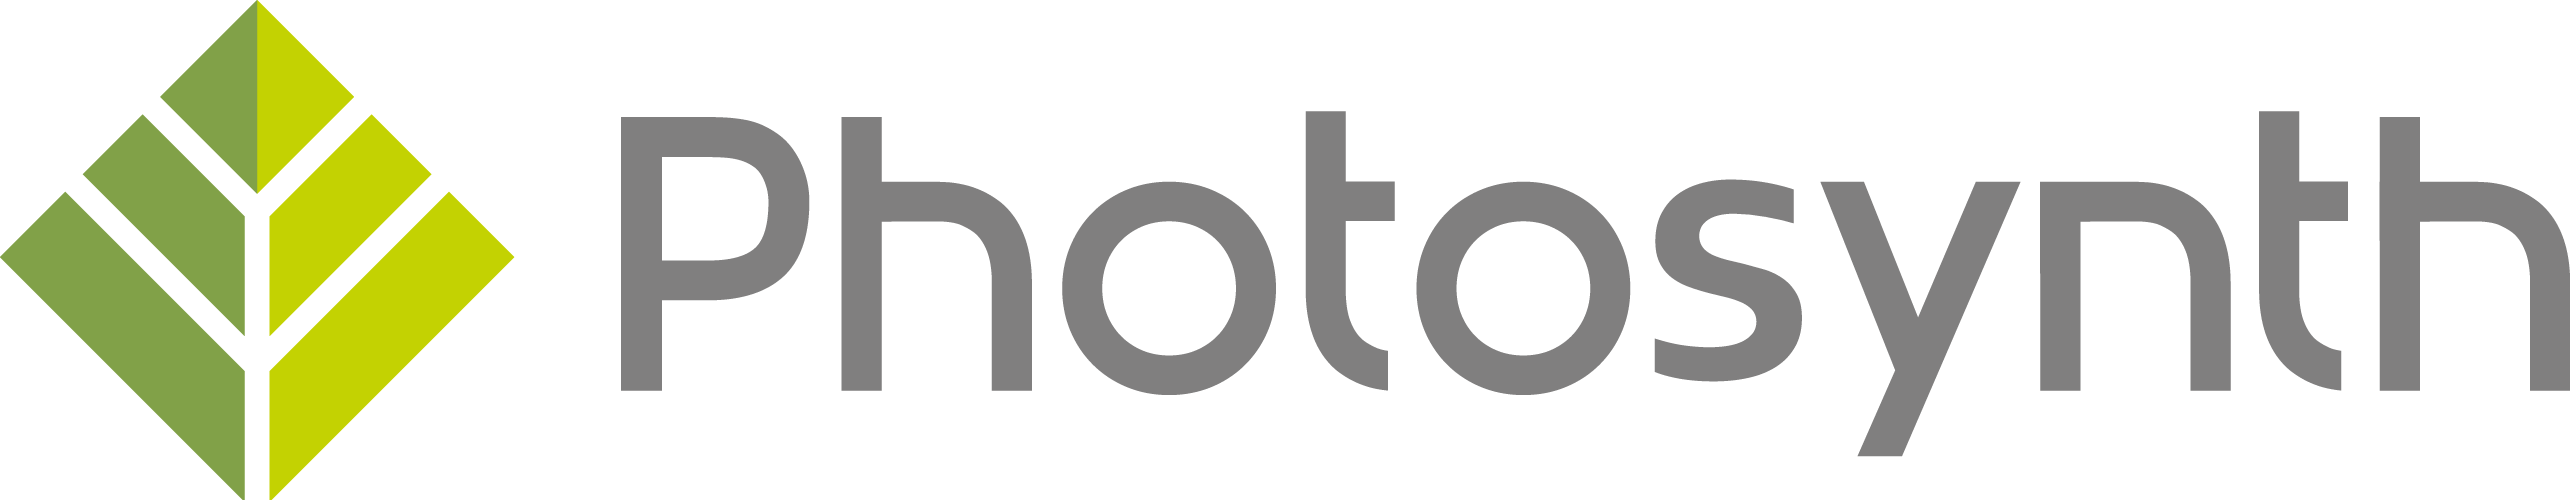 Photosynth_logo.png